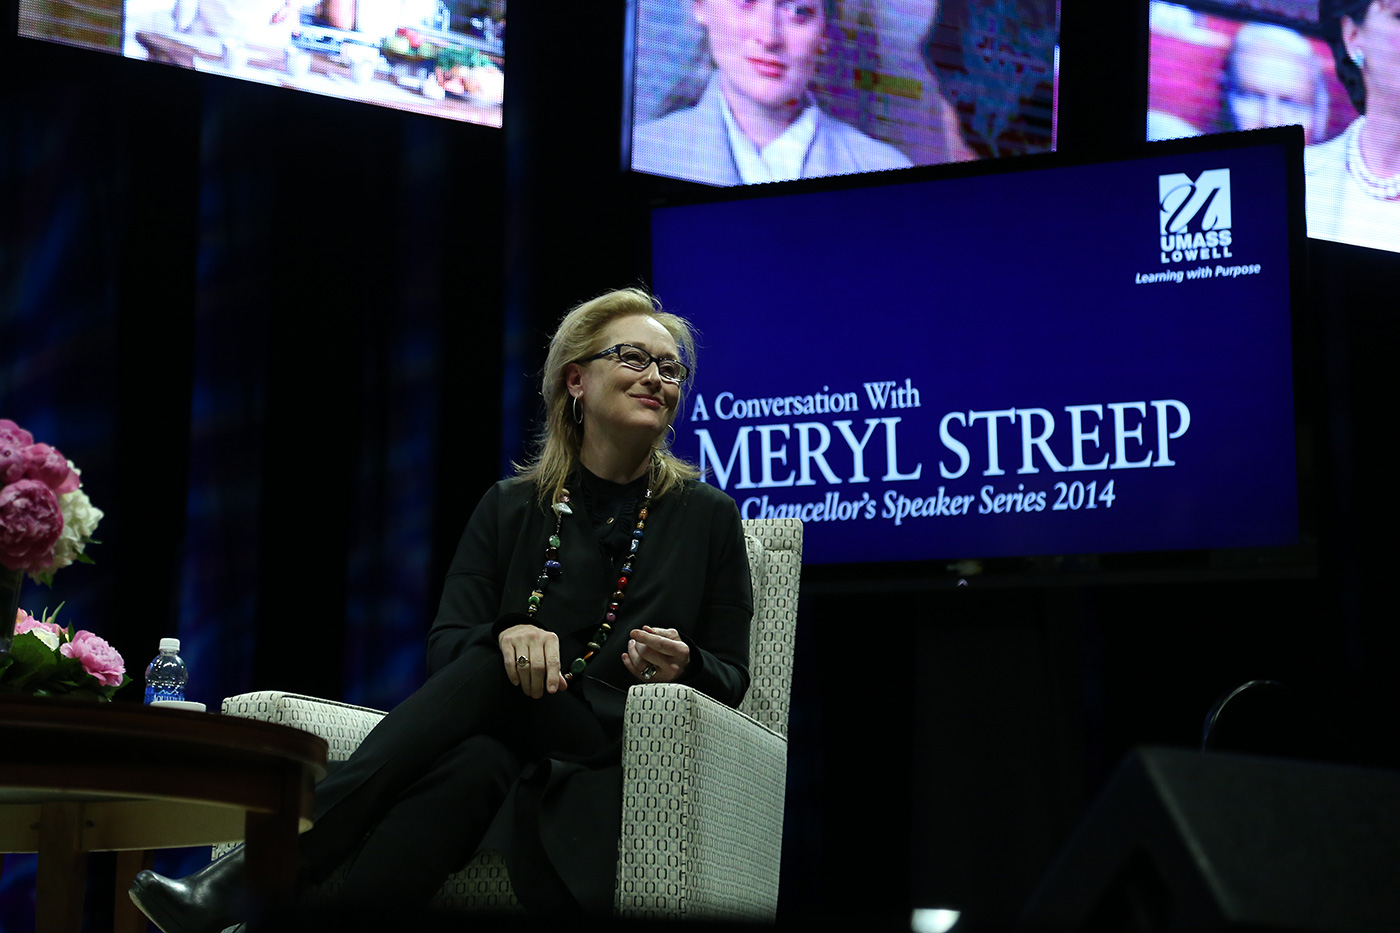 Meryl Streep, considered by many to be the greatest actress of our time, discussed her life, career and more at UMass Lowell at the Chancellor's Speaker Series on April 1, 2014.